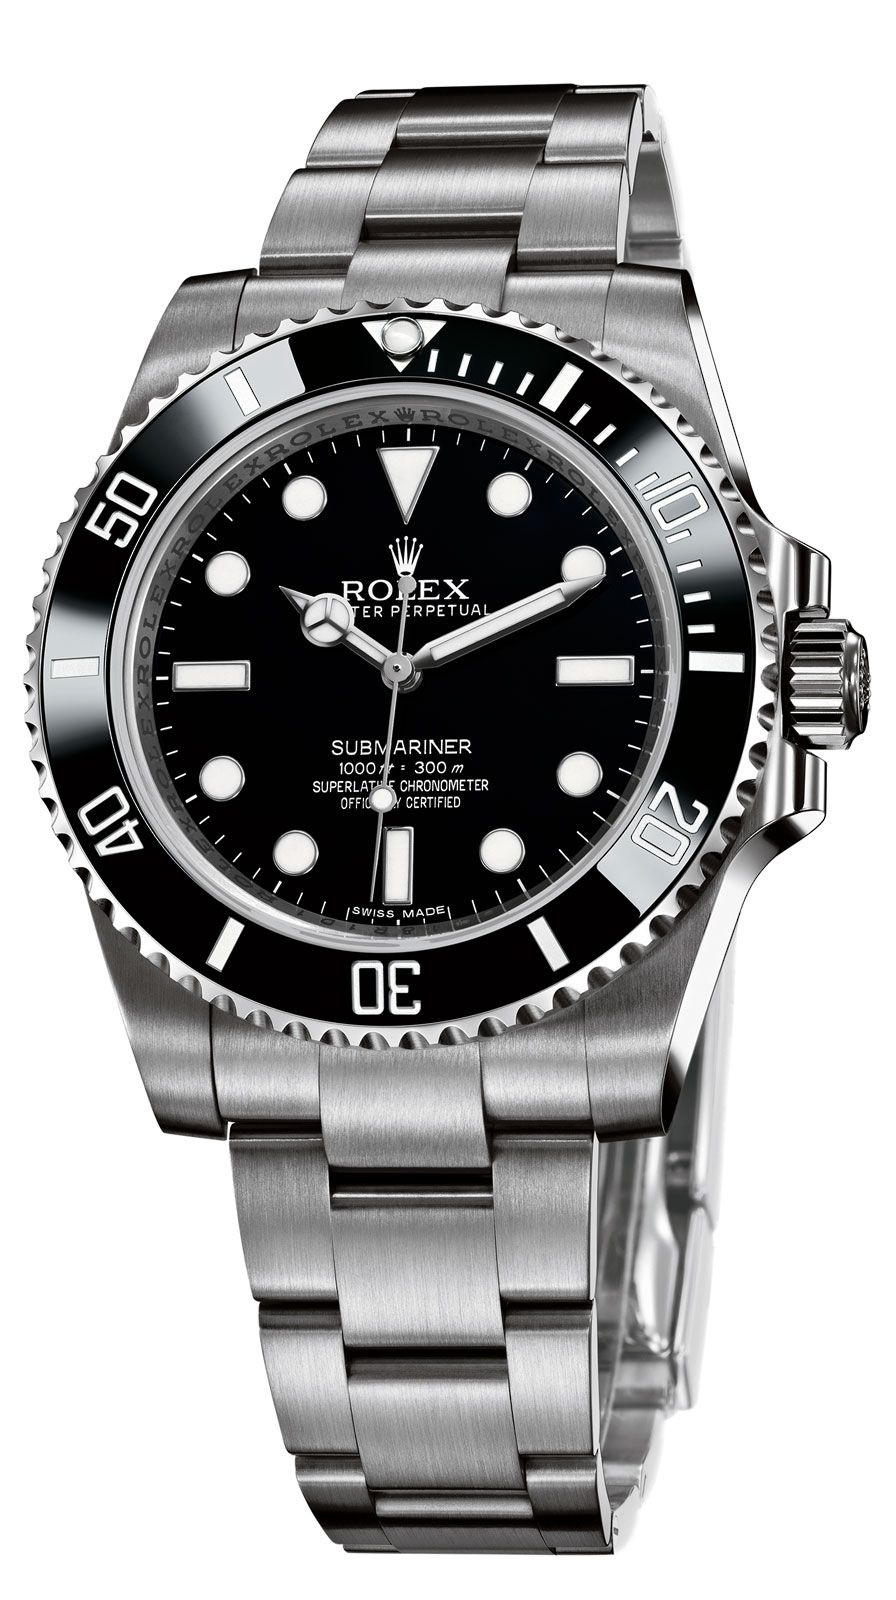 Top 10 Living Legend Watches To Own Ablogtowatch Rolex Watches Rolex Watches Submariner Rolex Submariner